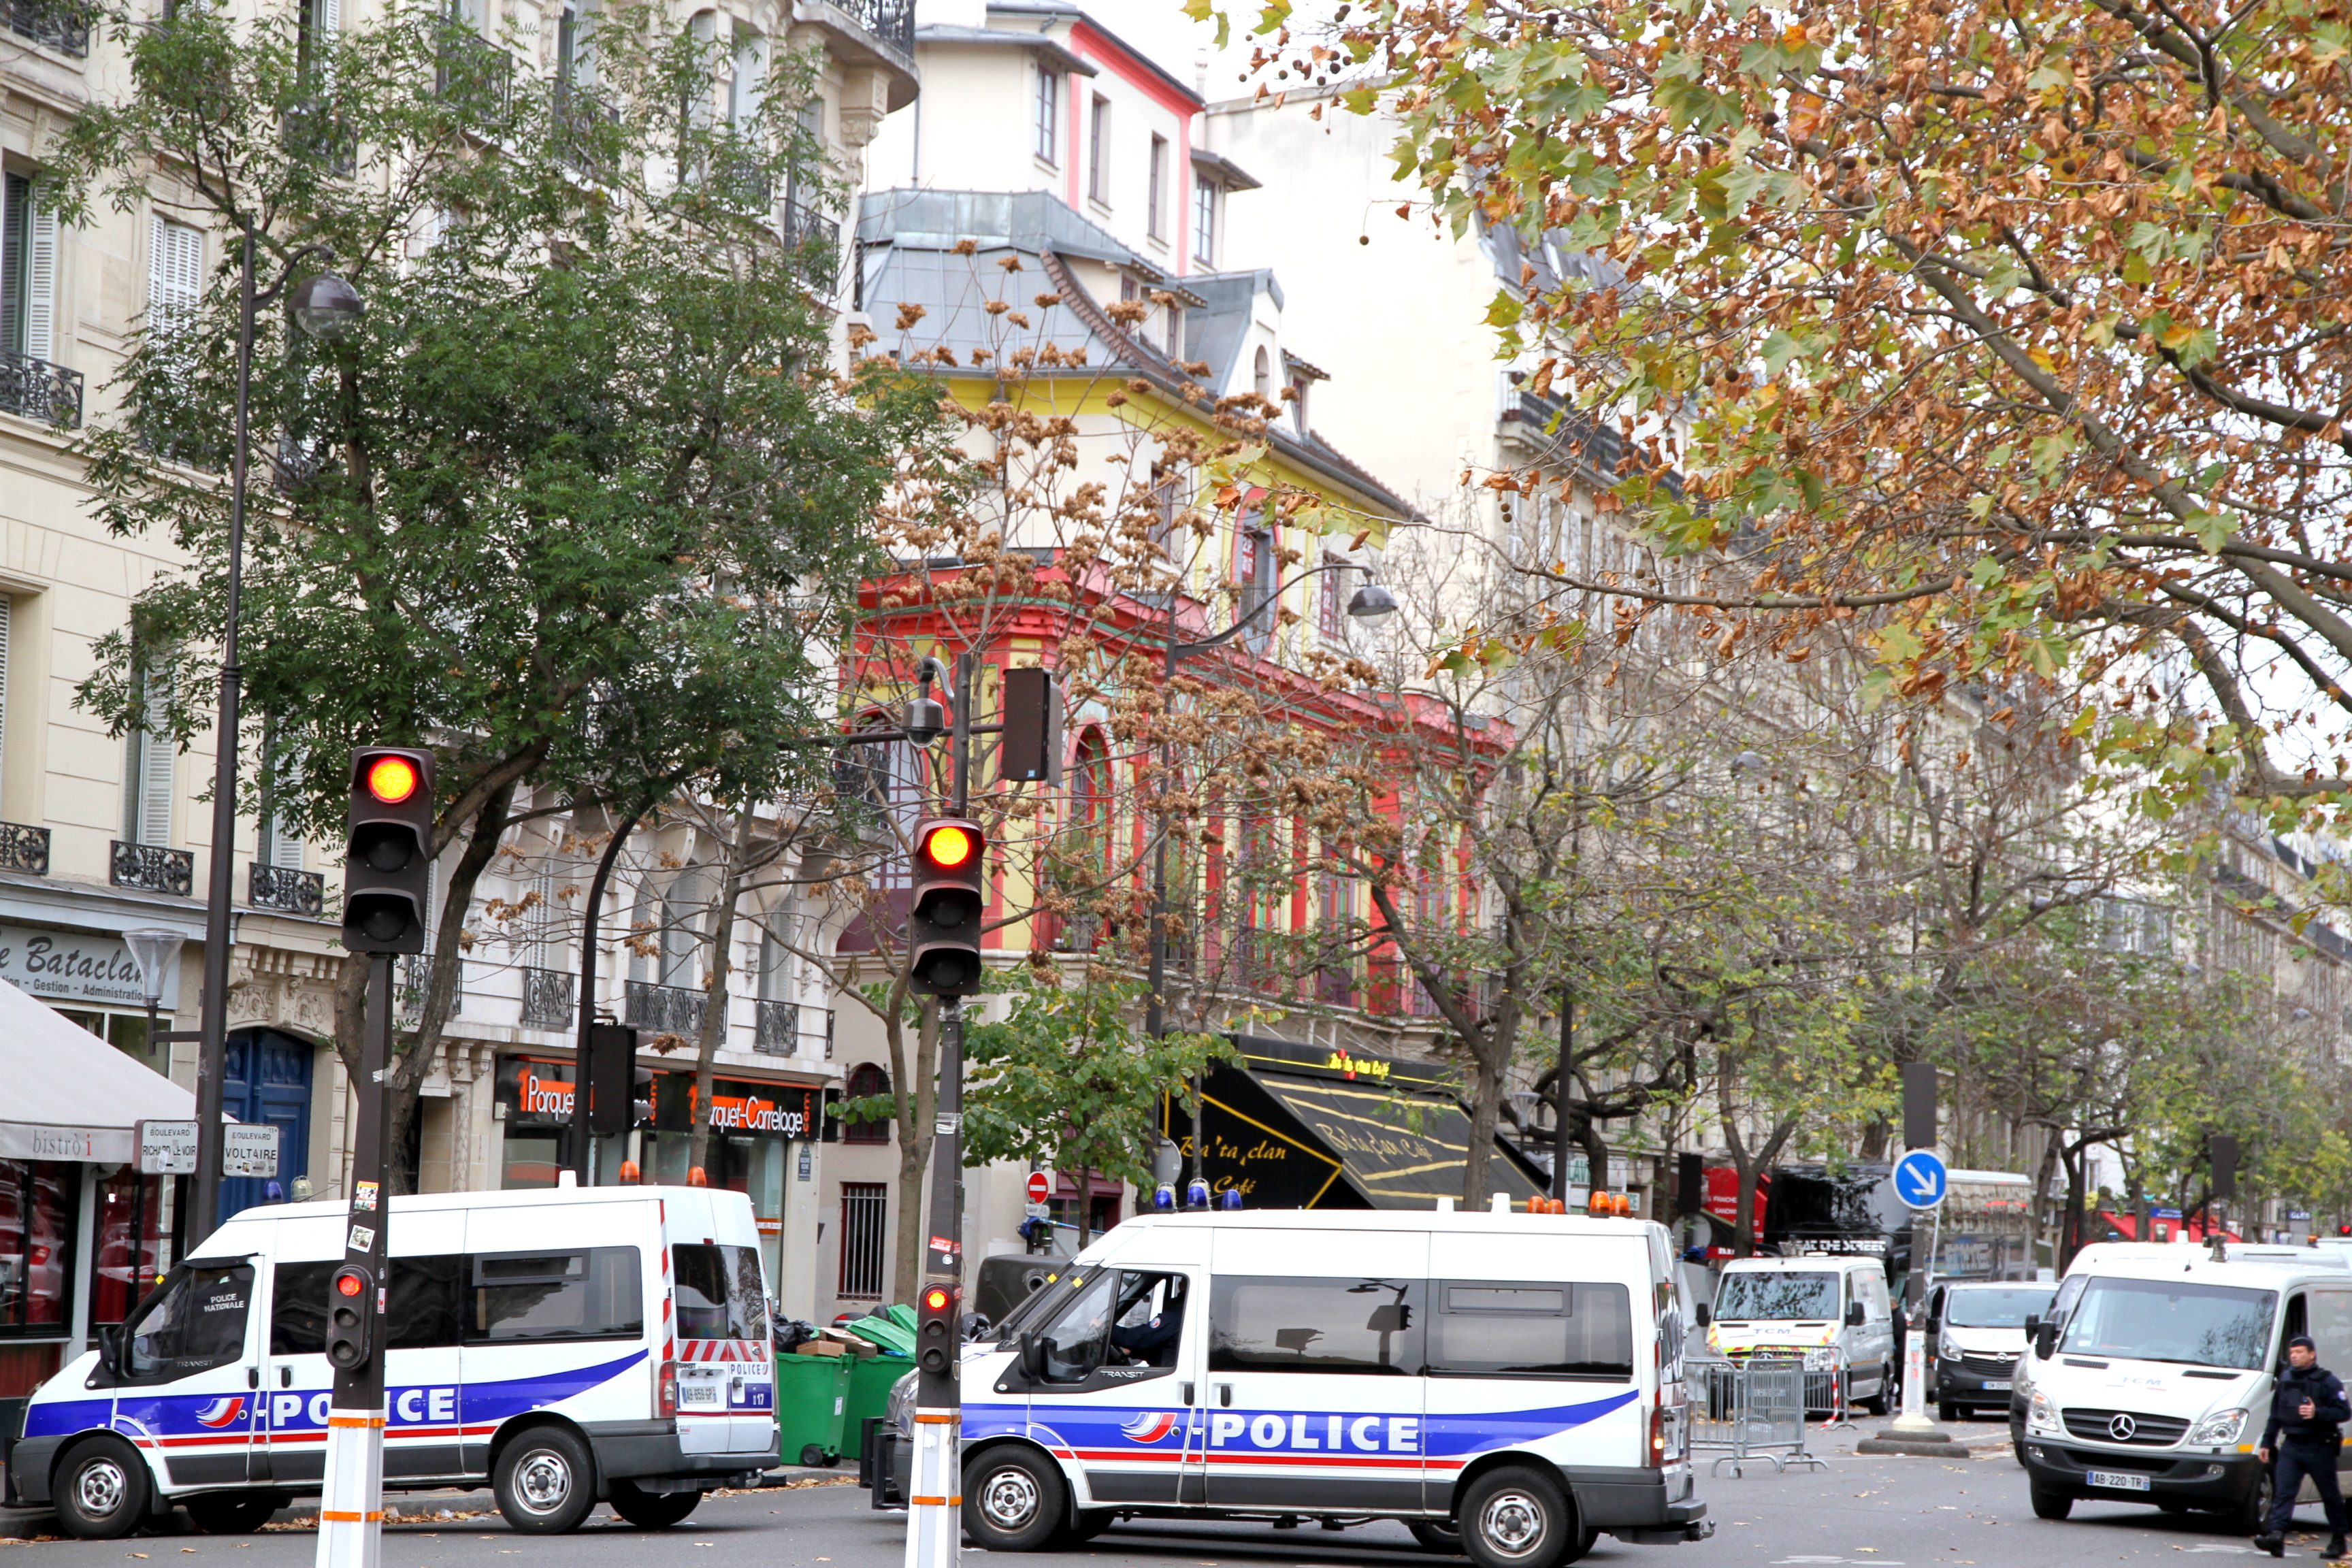 Paris has been on high alert in the wake of multiple terror attacks.